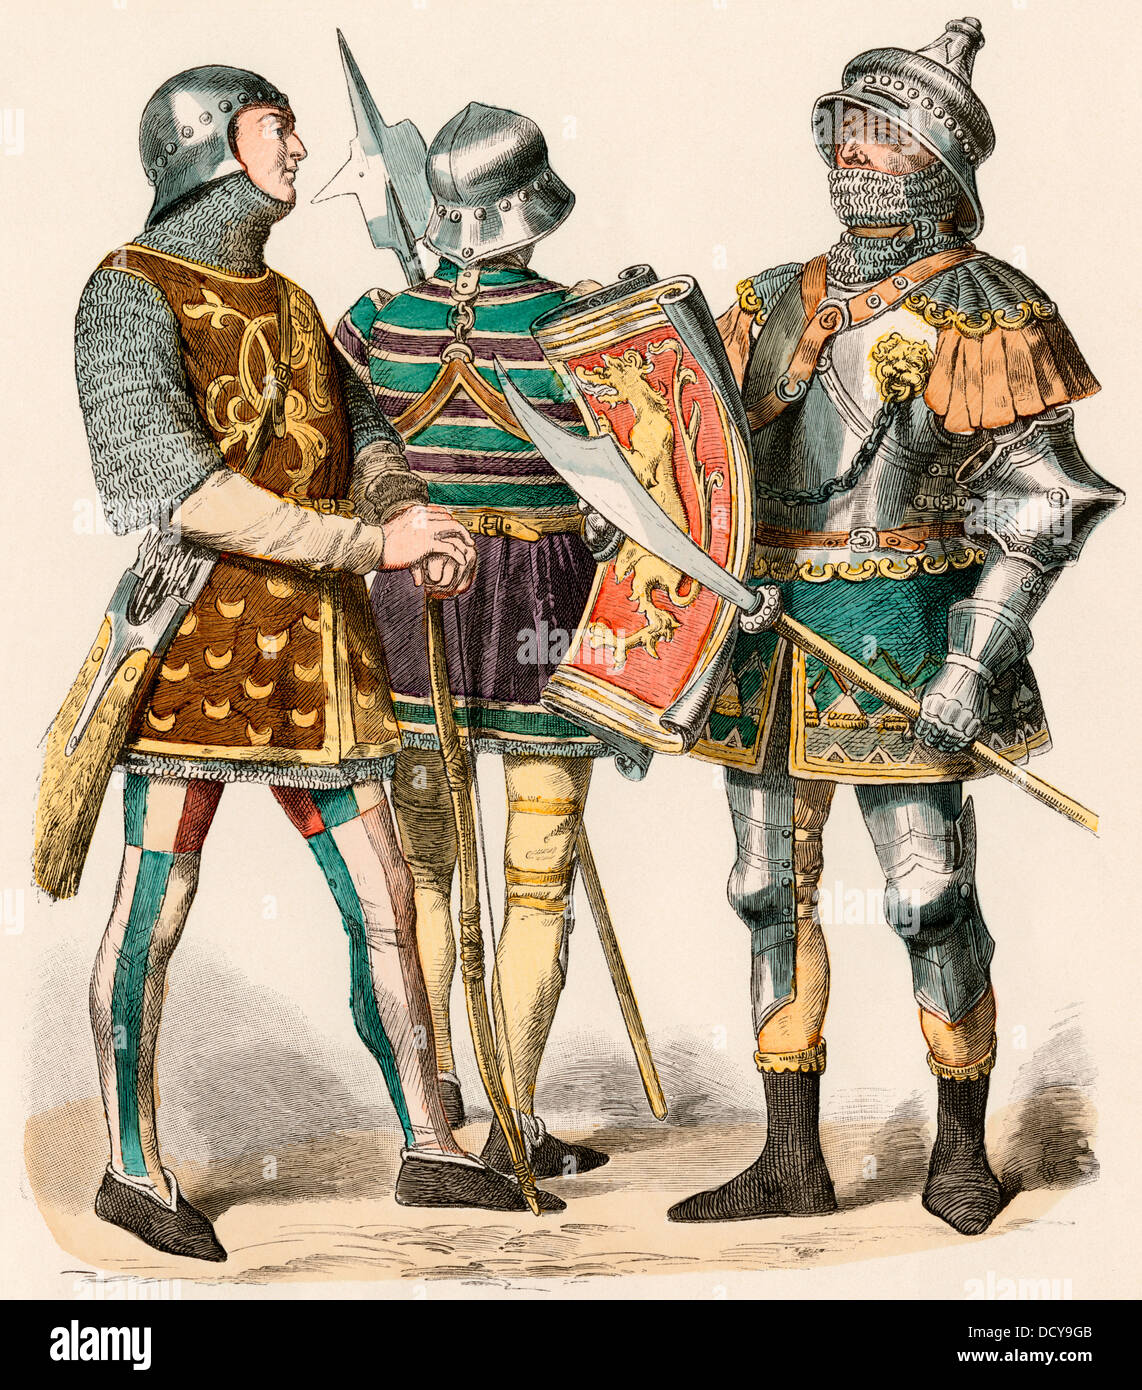 Burgundian archer wearing chain mail and a knight in plate armor, 1470. Hand-colored print - Stock Image